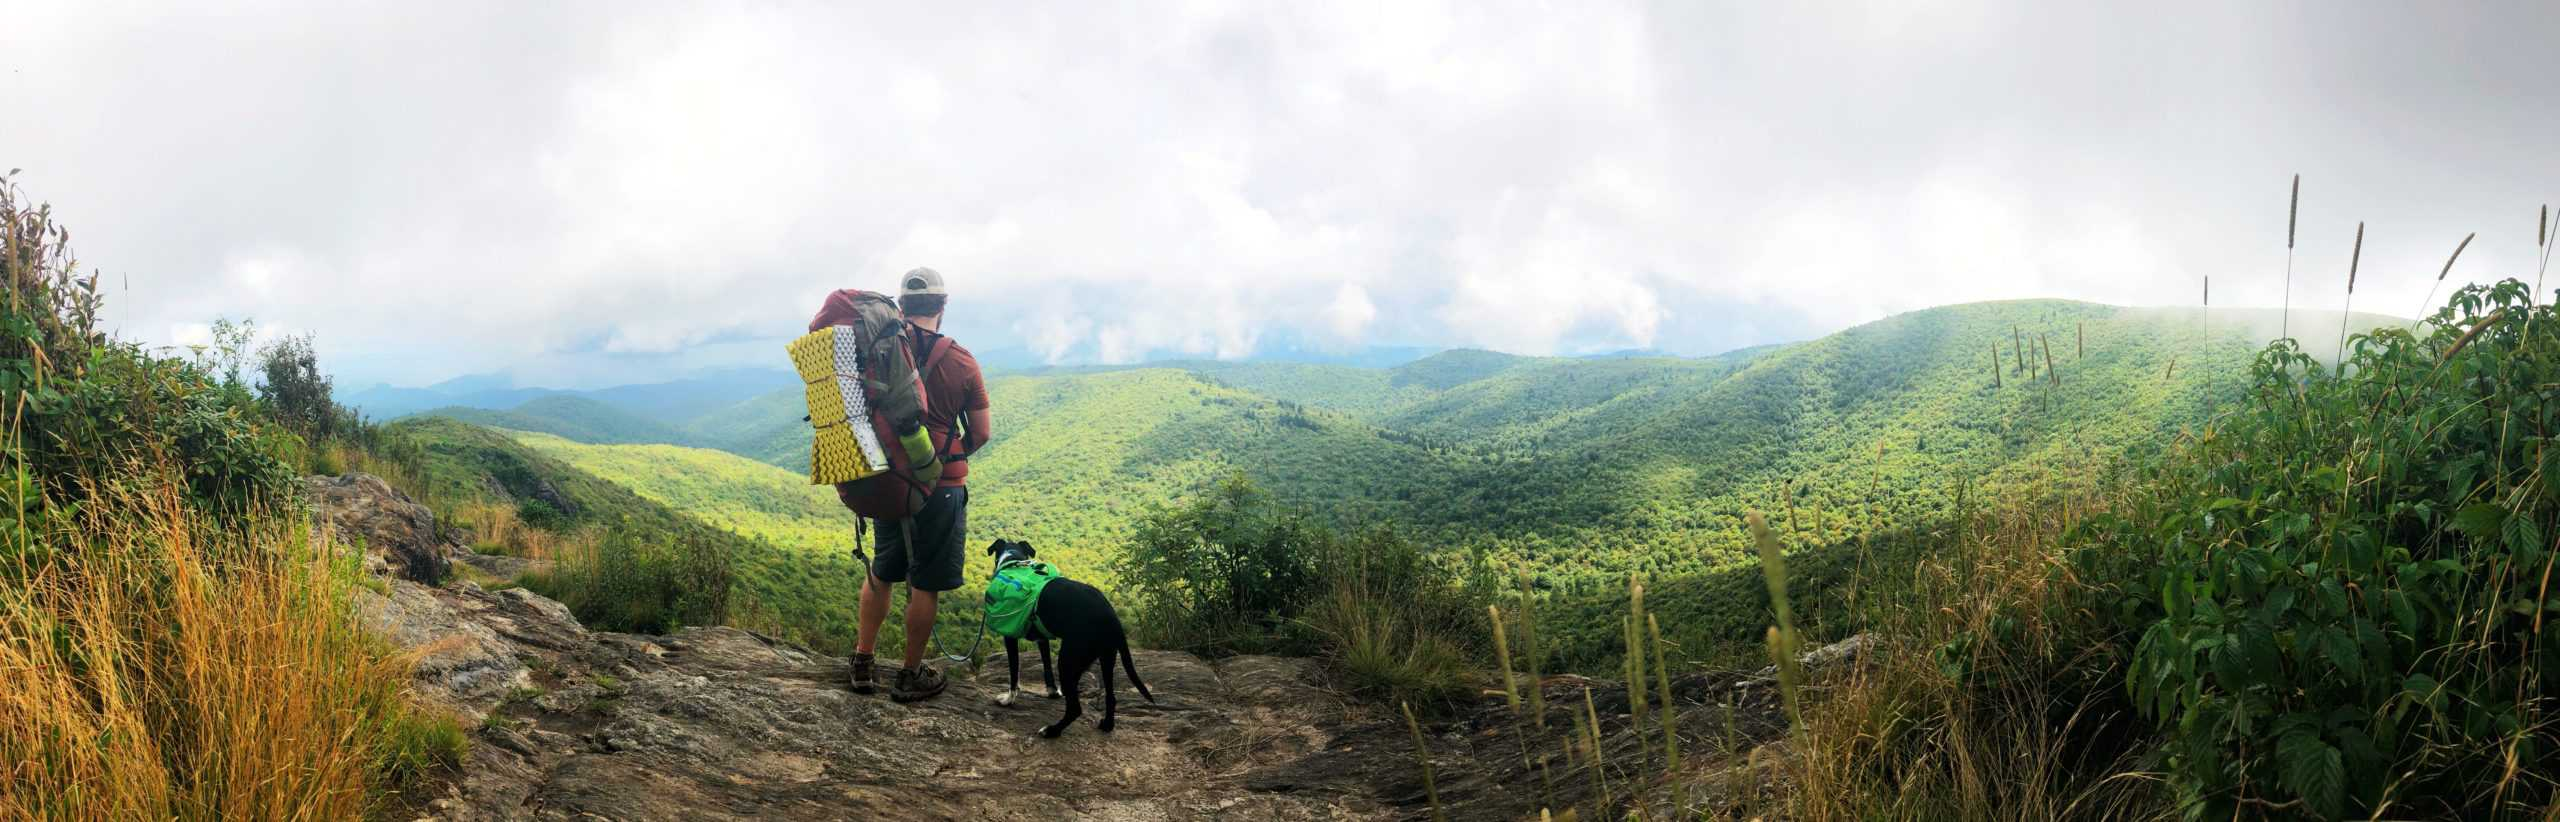 man and dog wearing backpacks on a hike and looking at a long range view on tennent mountain in north carolina